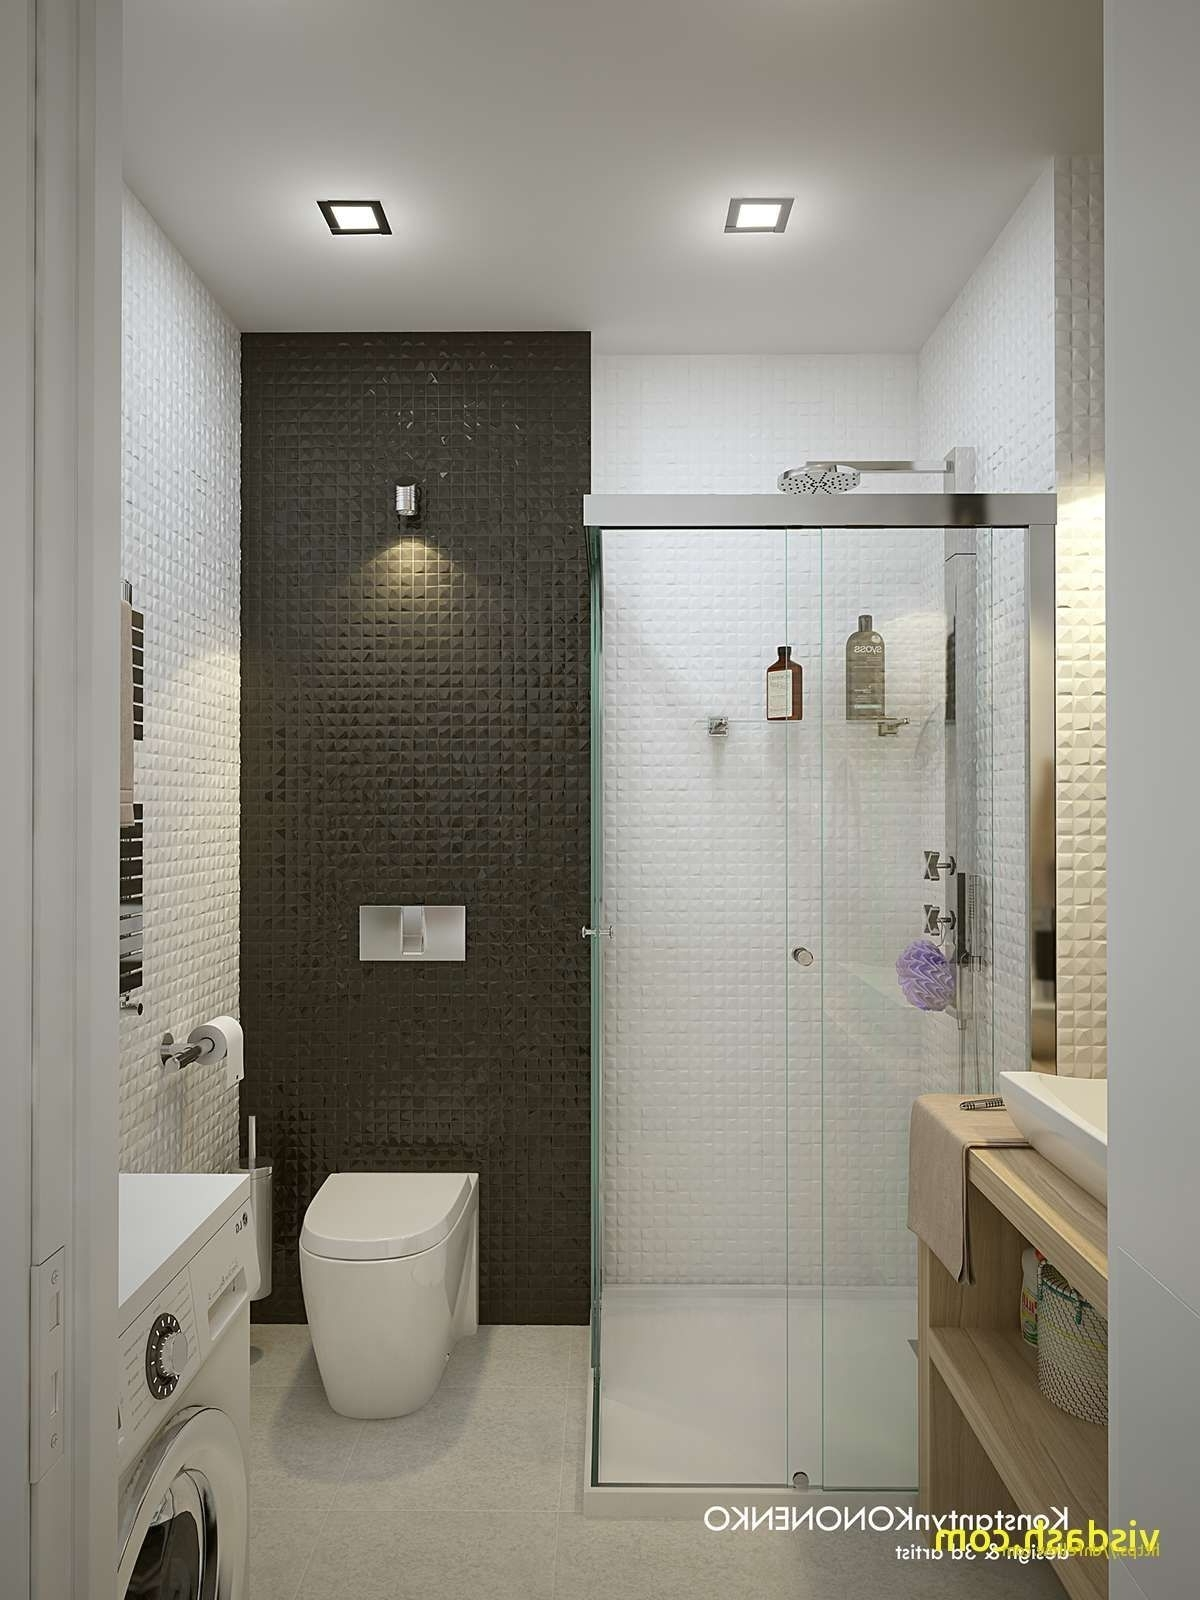 Recommended Home Designer: Bathroom Design 2 X 2 Metres 40+ 2X2 Bathroom Design Ideas